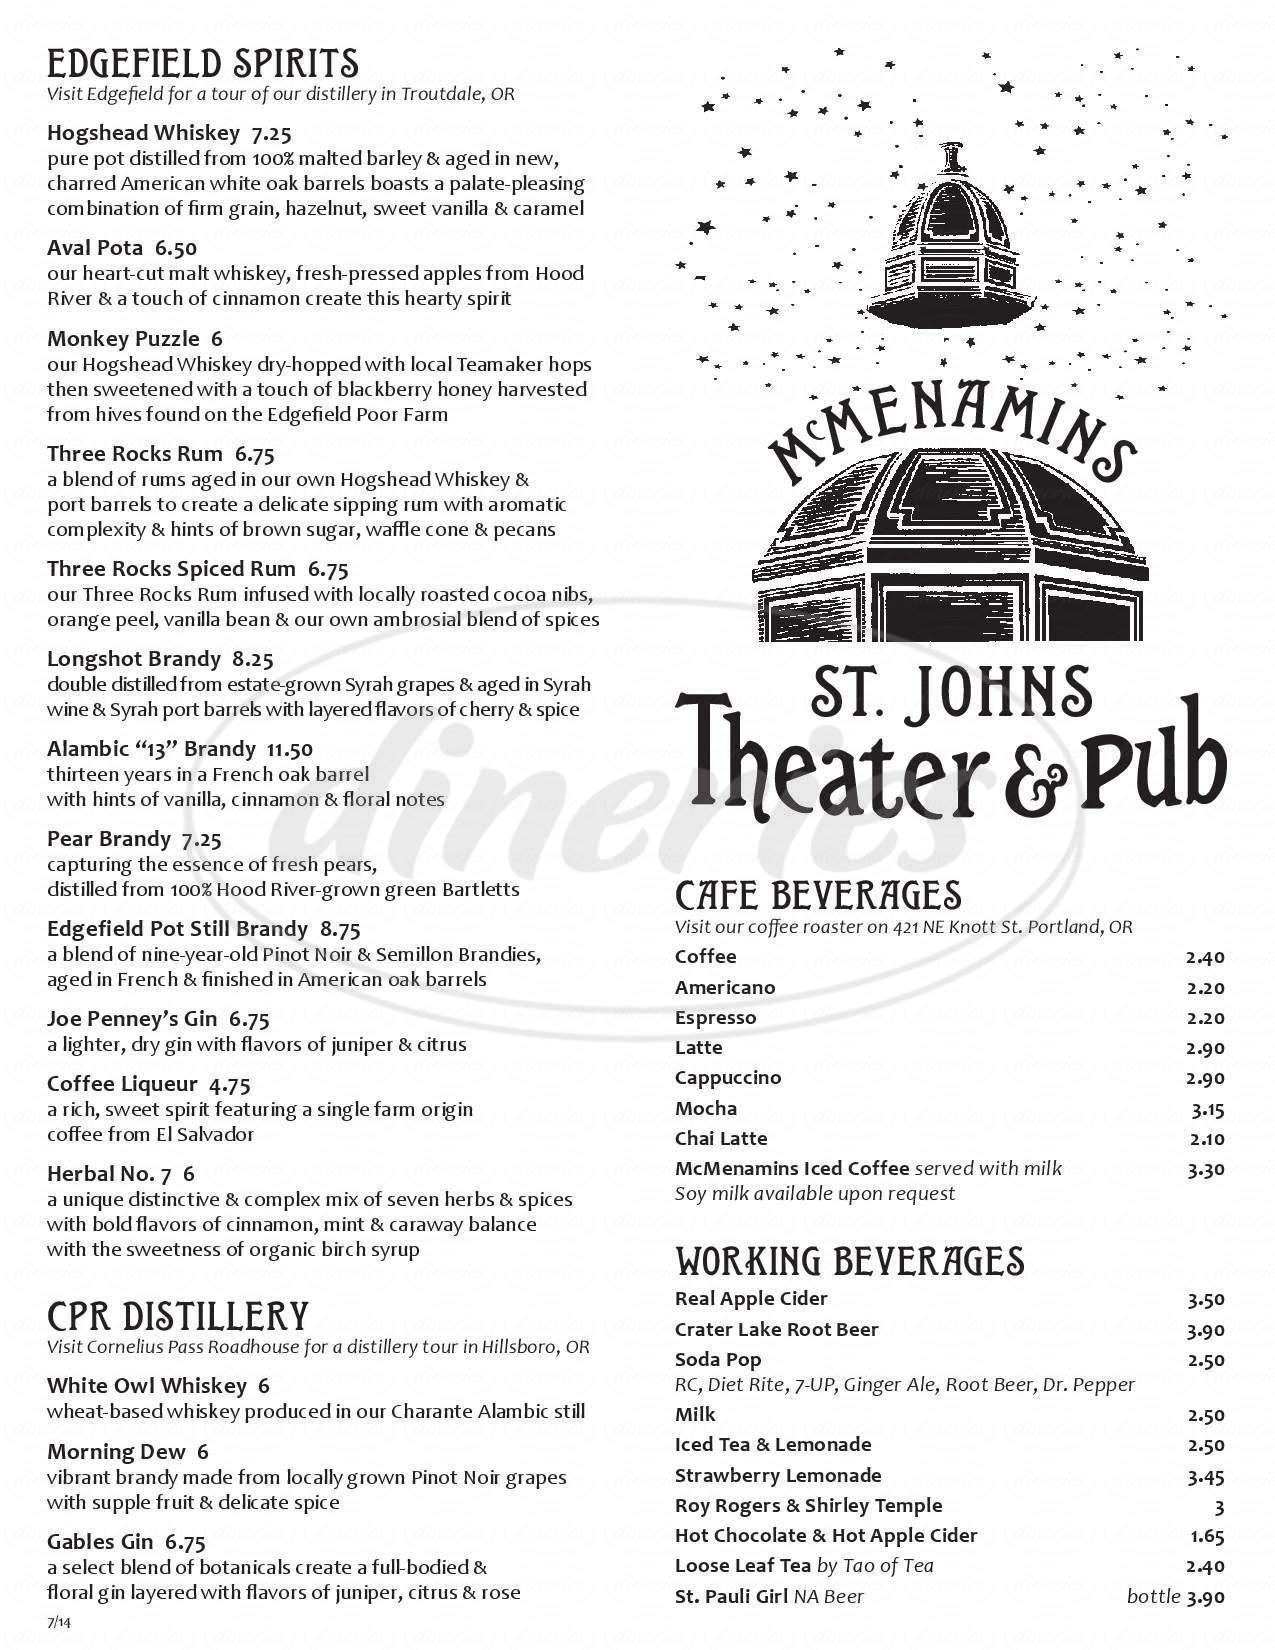 menu for St. Johns Theater & Pub